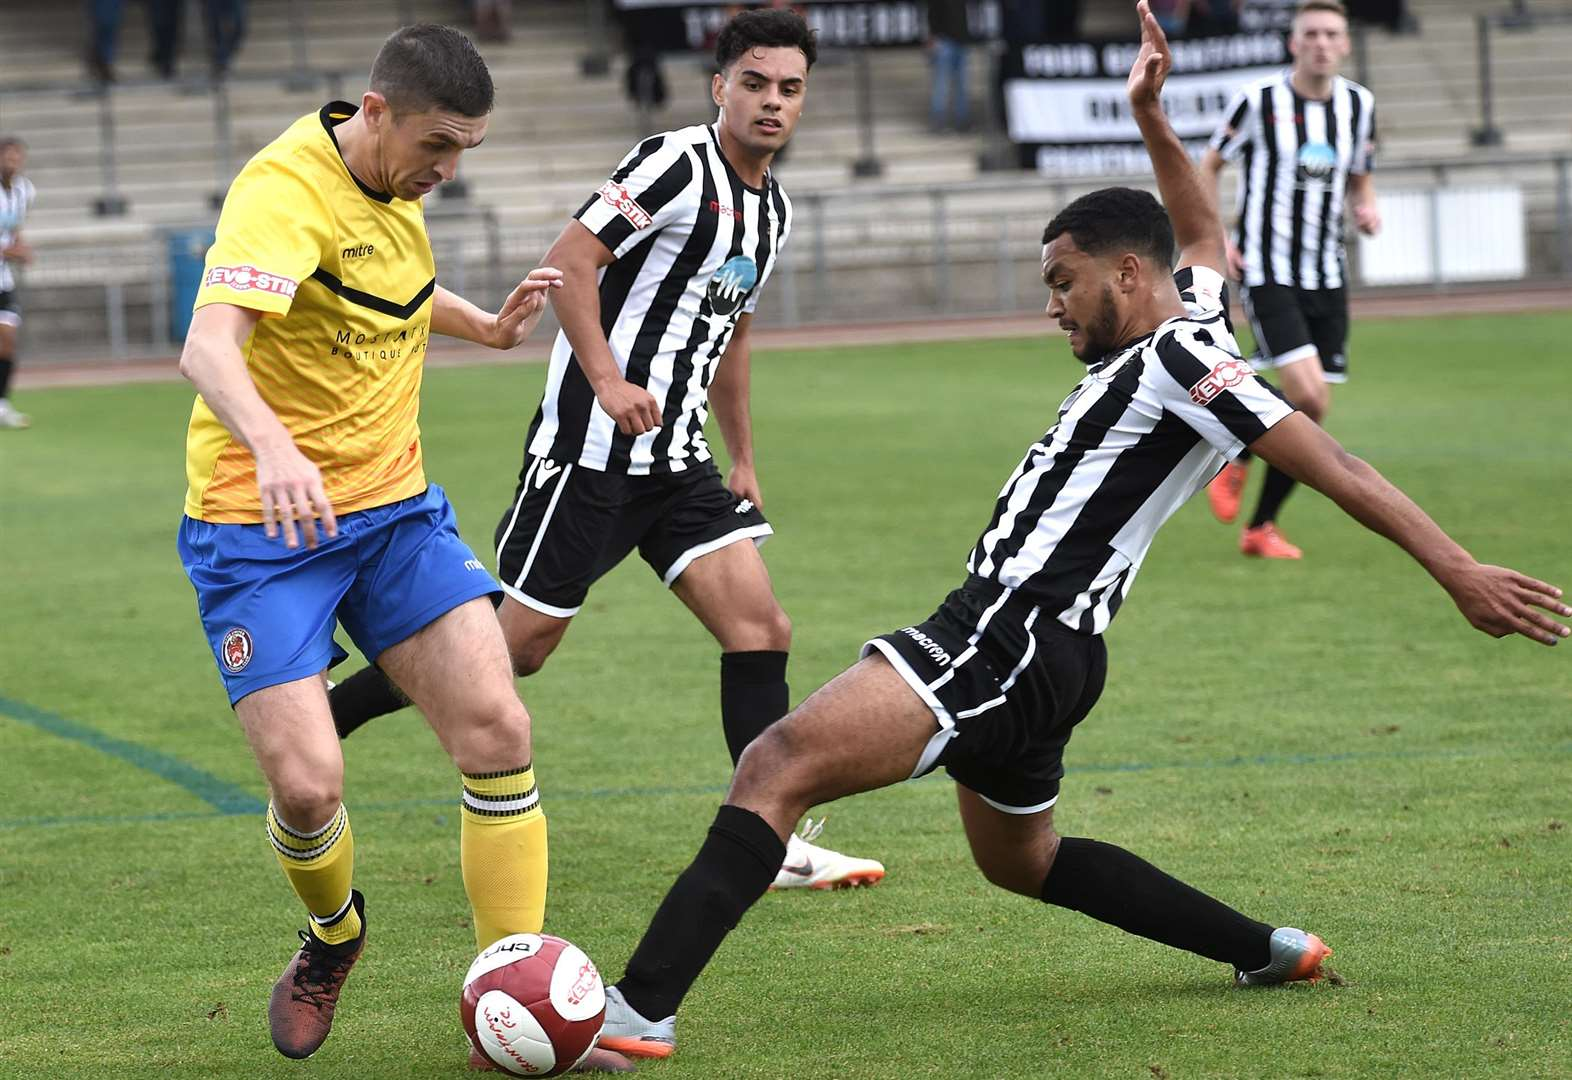 Grantham Town travel to St Ives for FA Cup tie